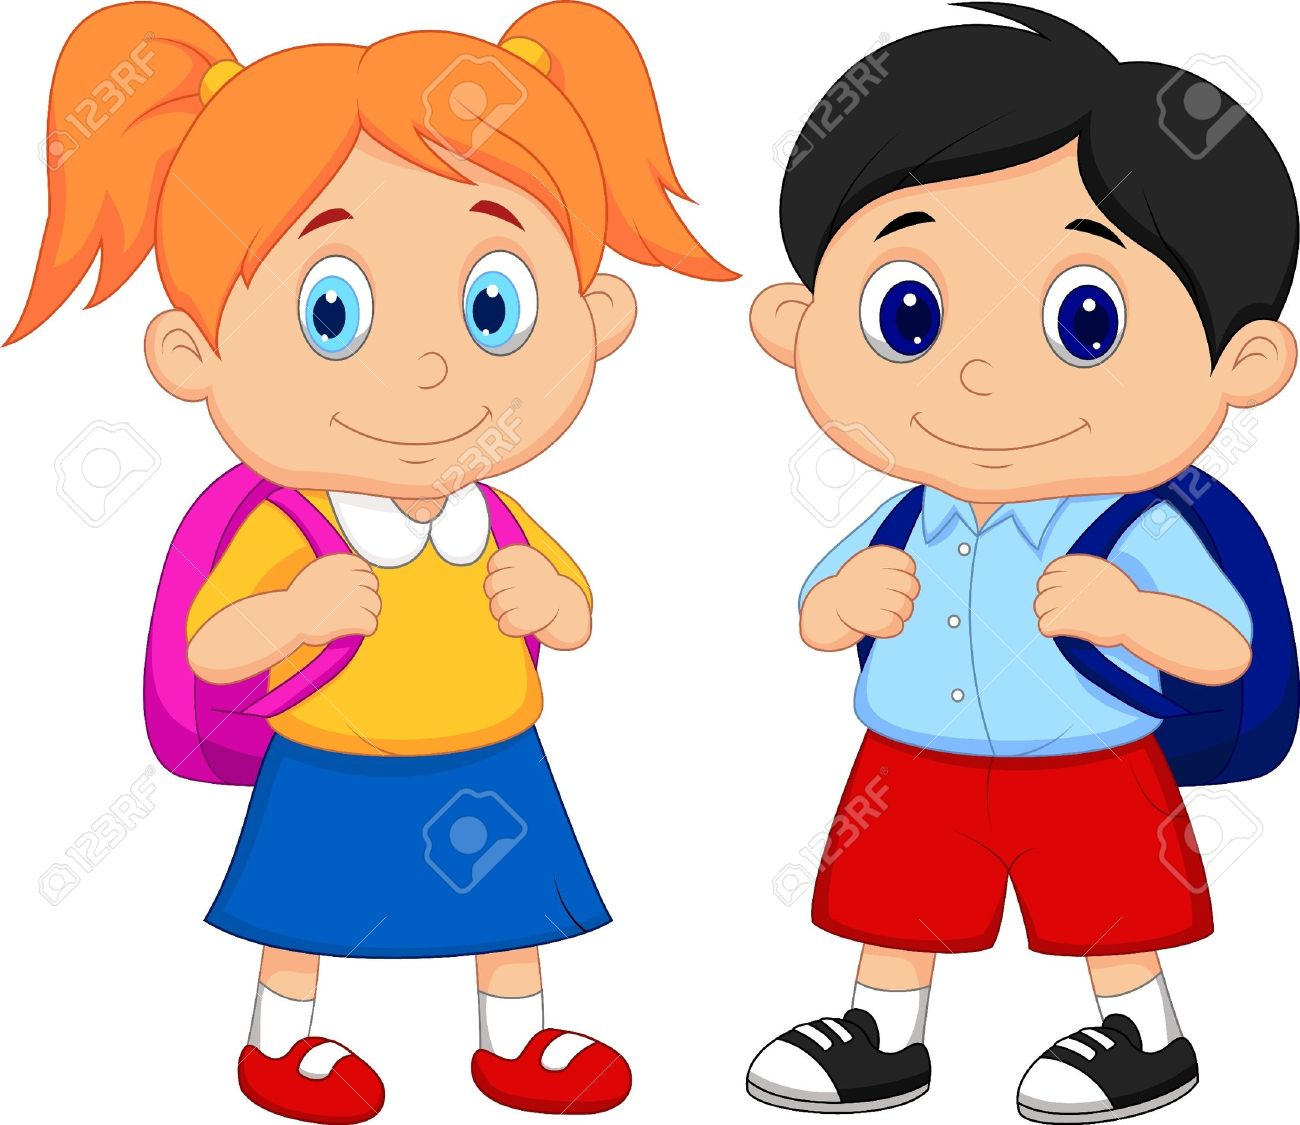 School student images clipart picture royalty free library Boy student clipart 6 » Clipart Station picture royalty free library